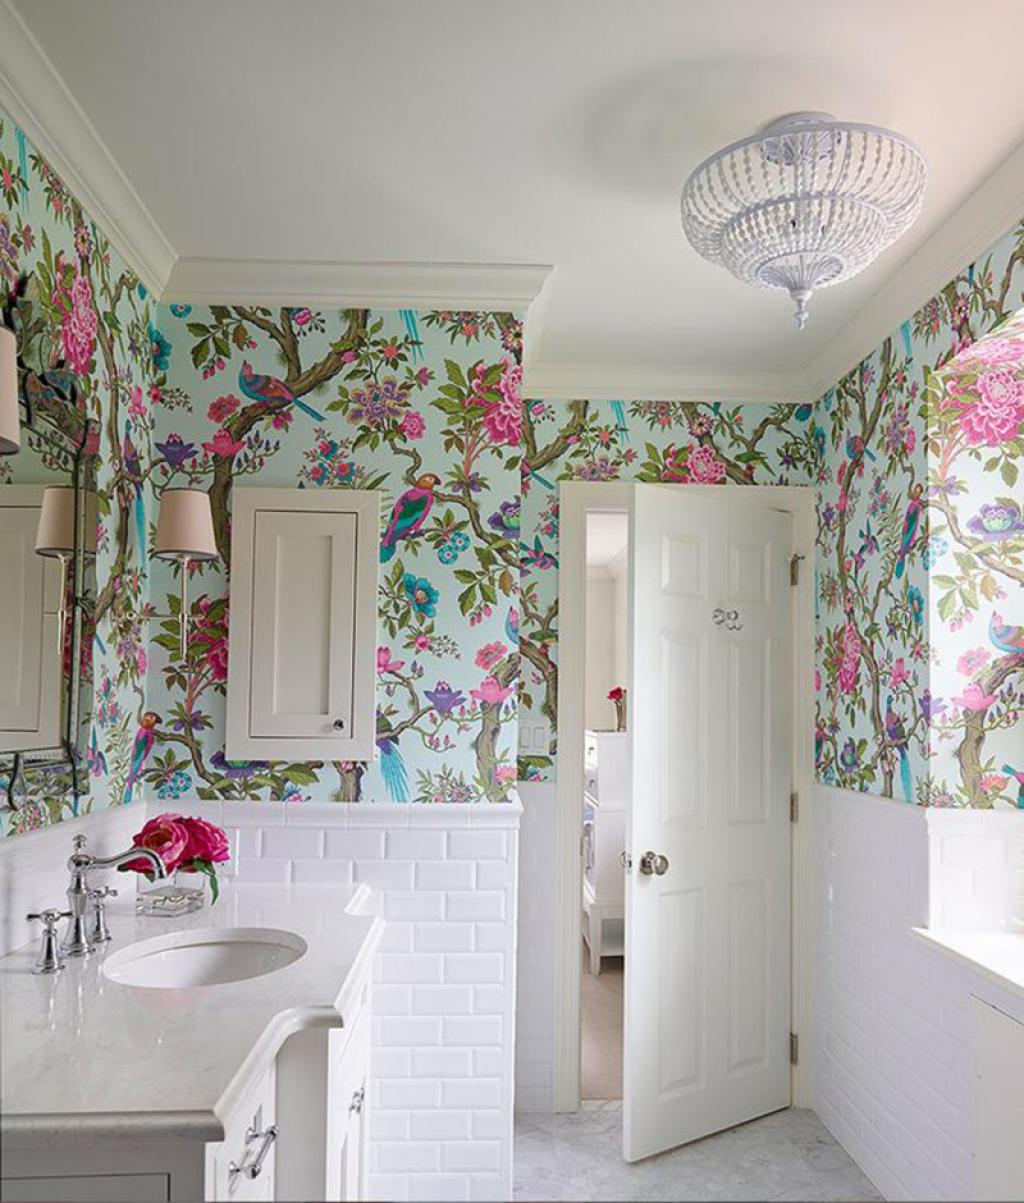 Floral royal bathroom wallpaper ideas on small white for Bathroom wallpaper